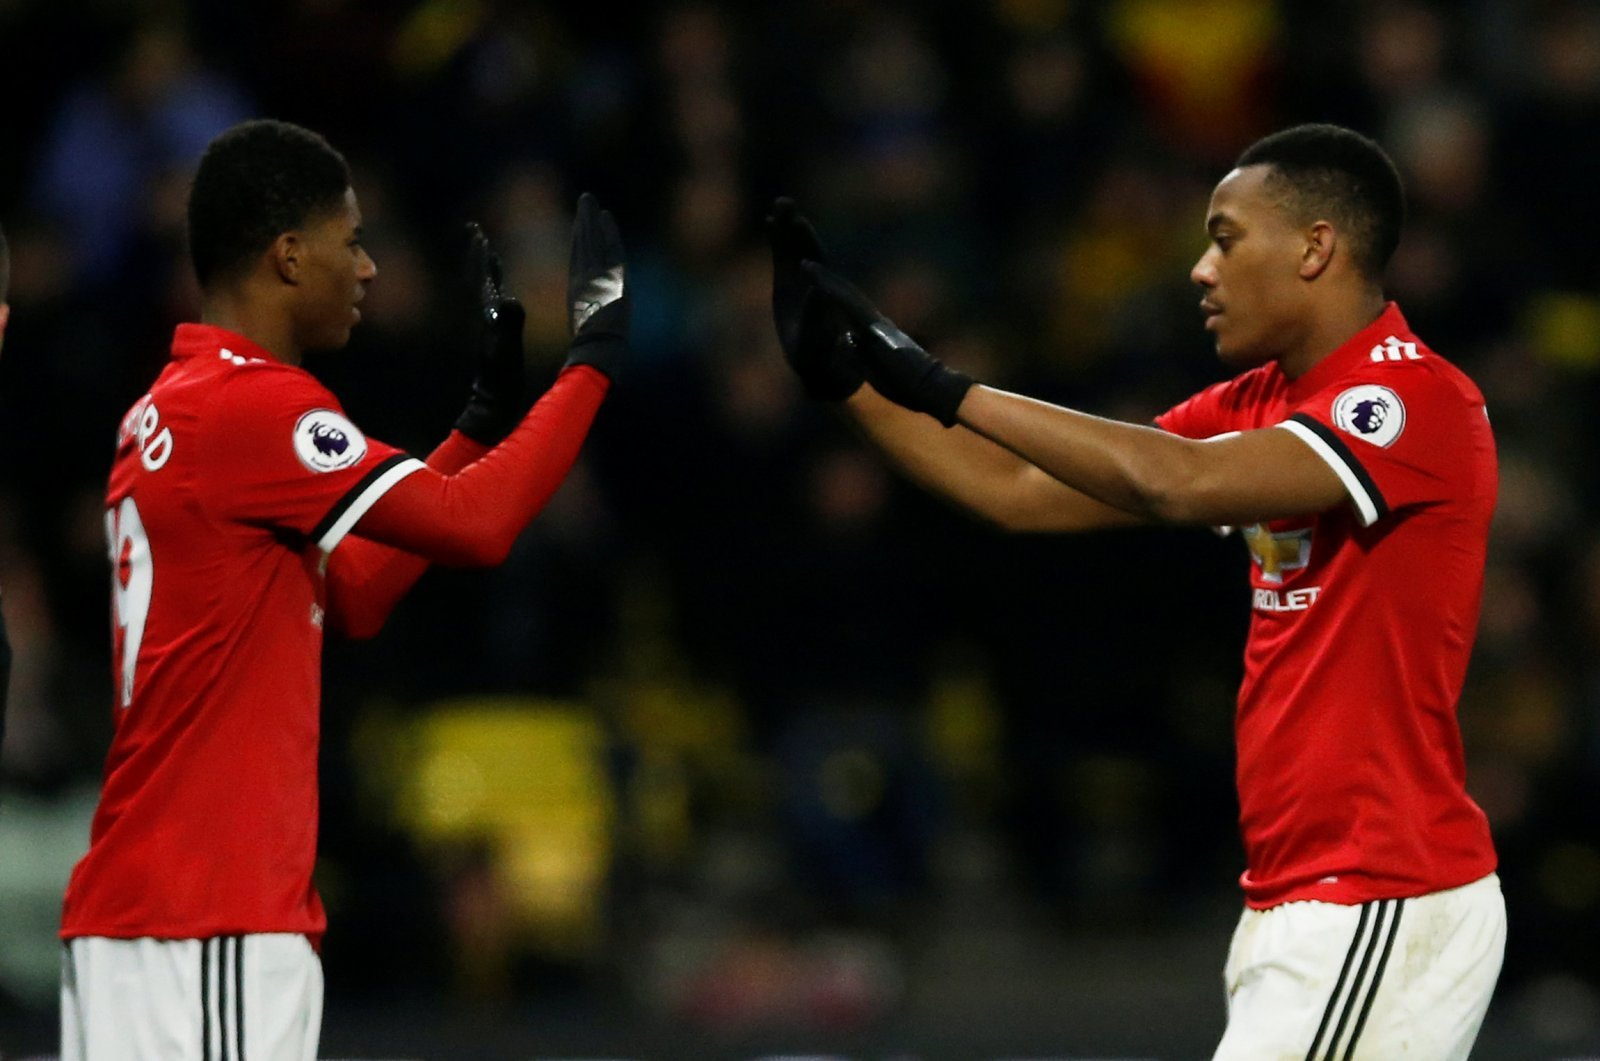 Manchester United should ensure this pair are the building blocks of their team for years to come